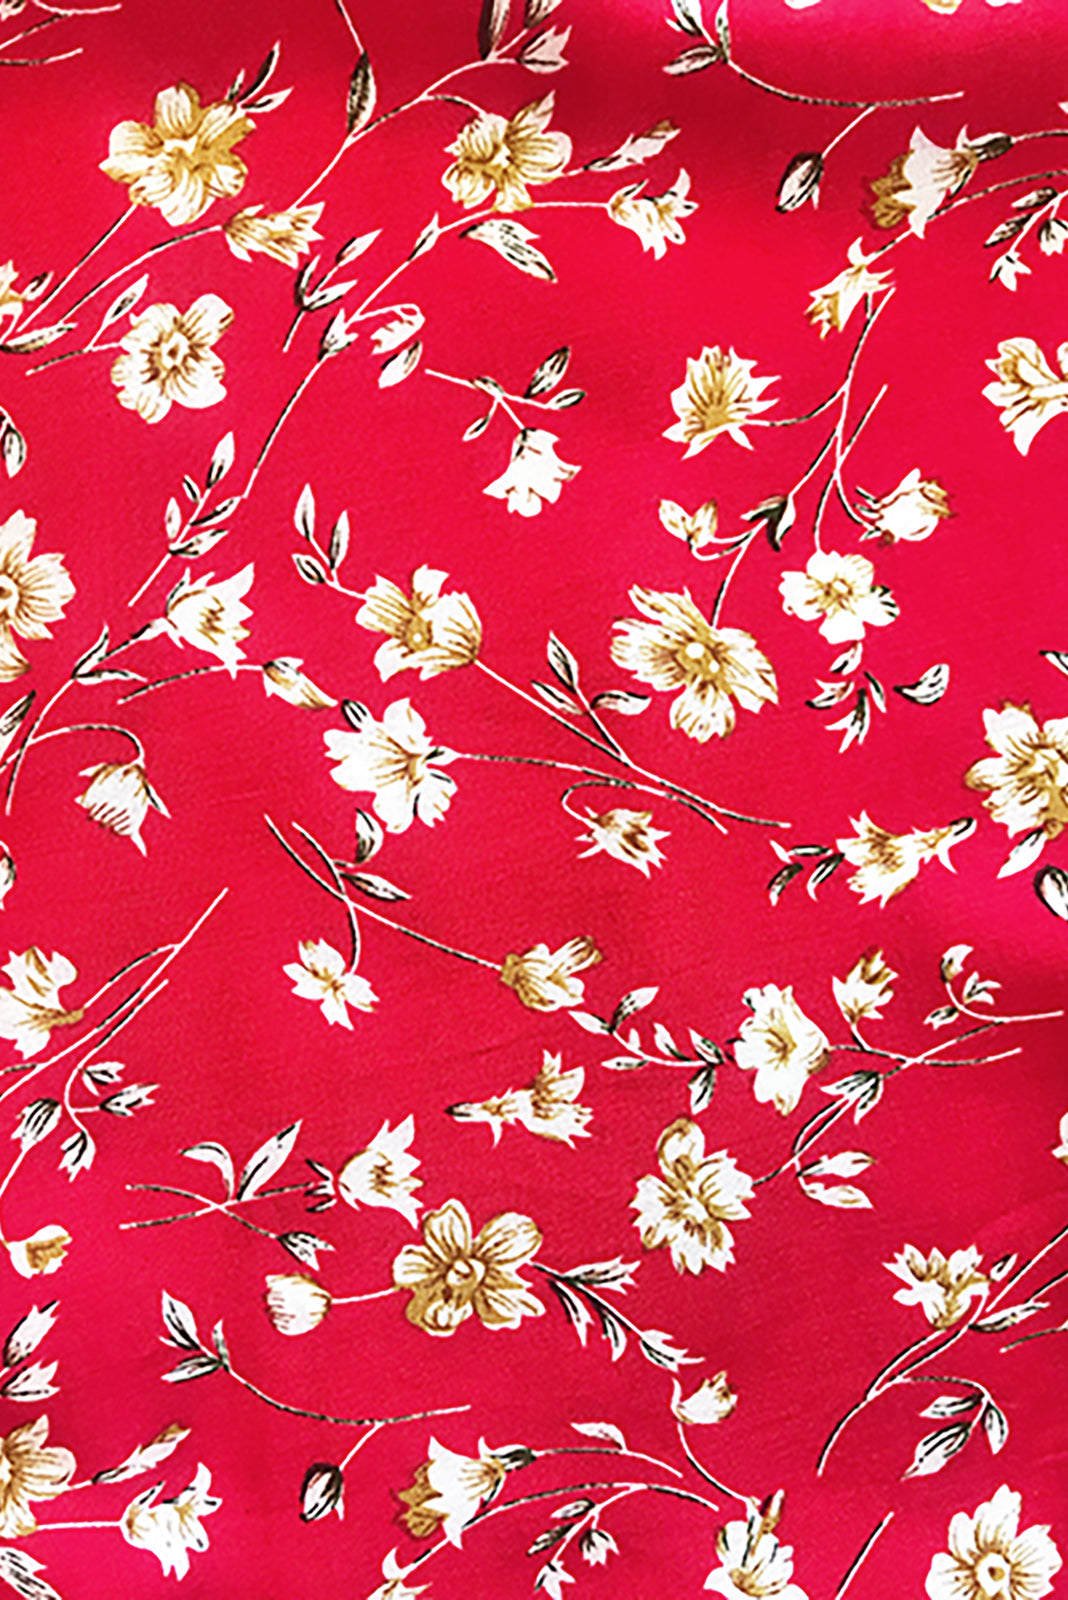 Fabric swatch, 100% woven viscose, bright red base with petite white, gold and black floral print.